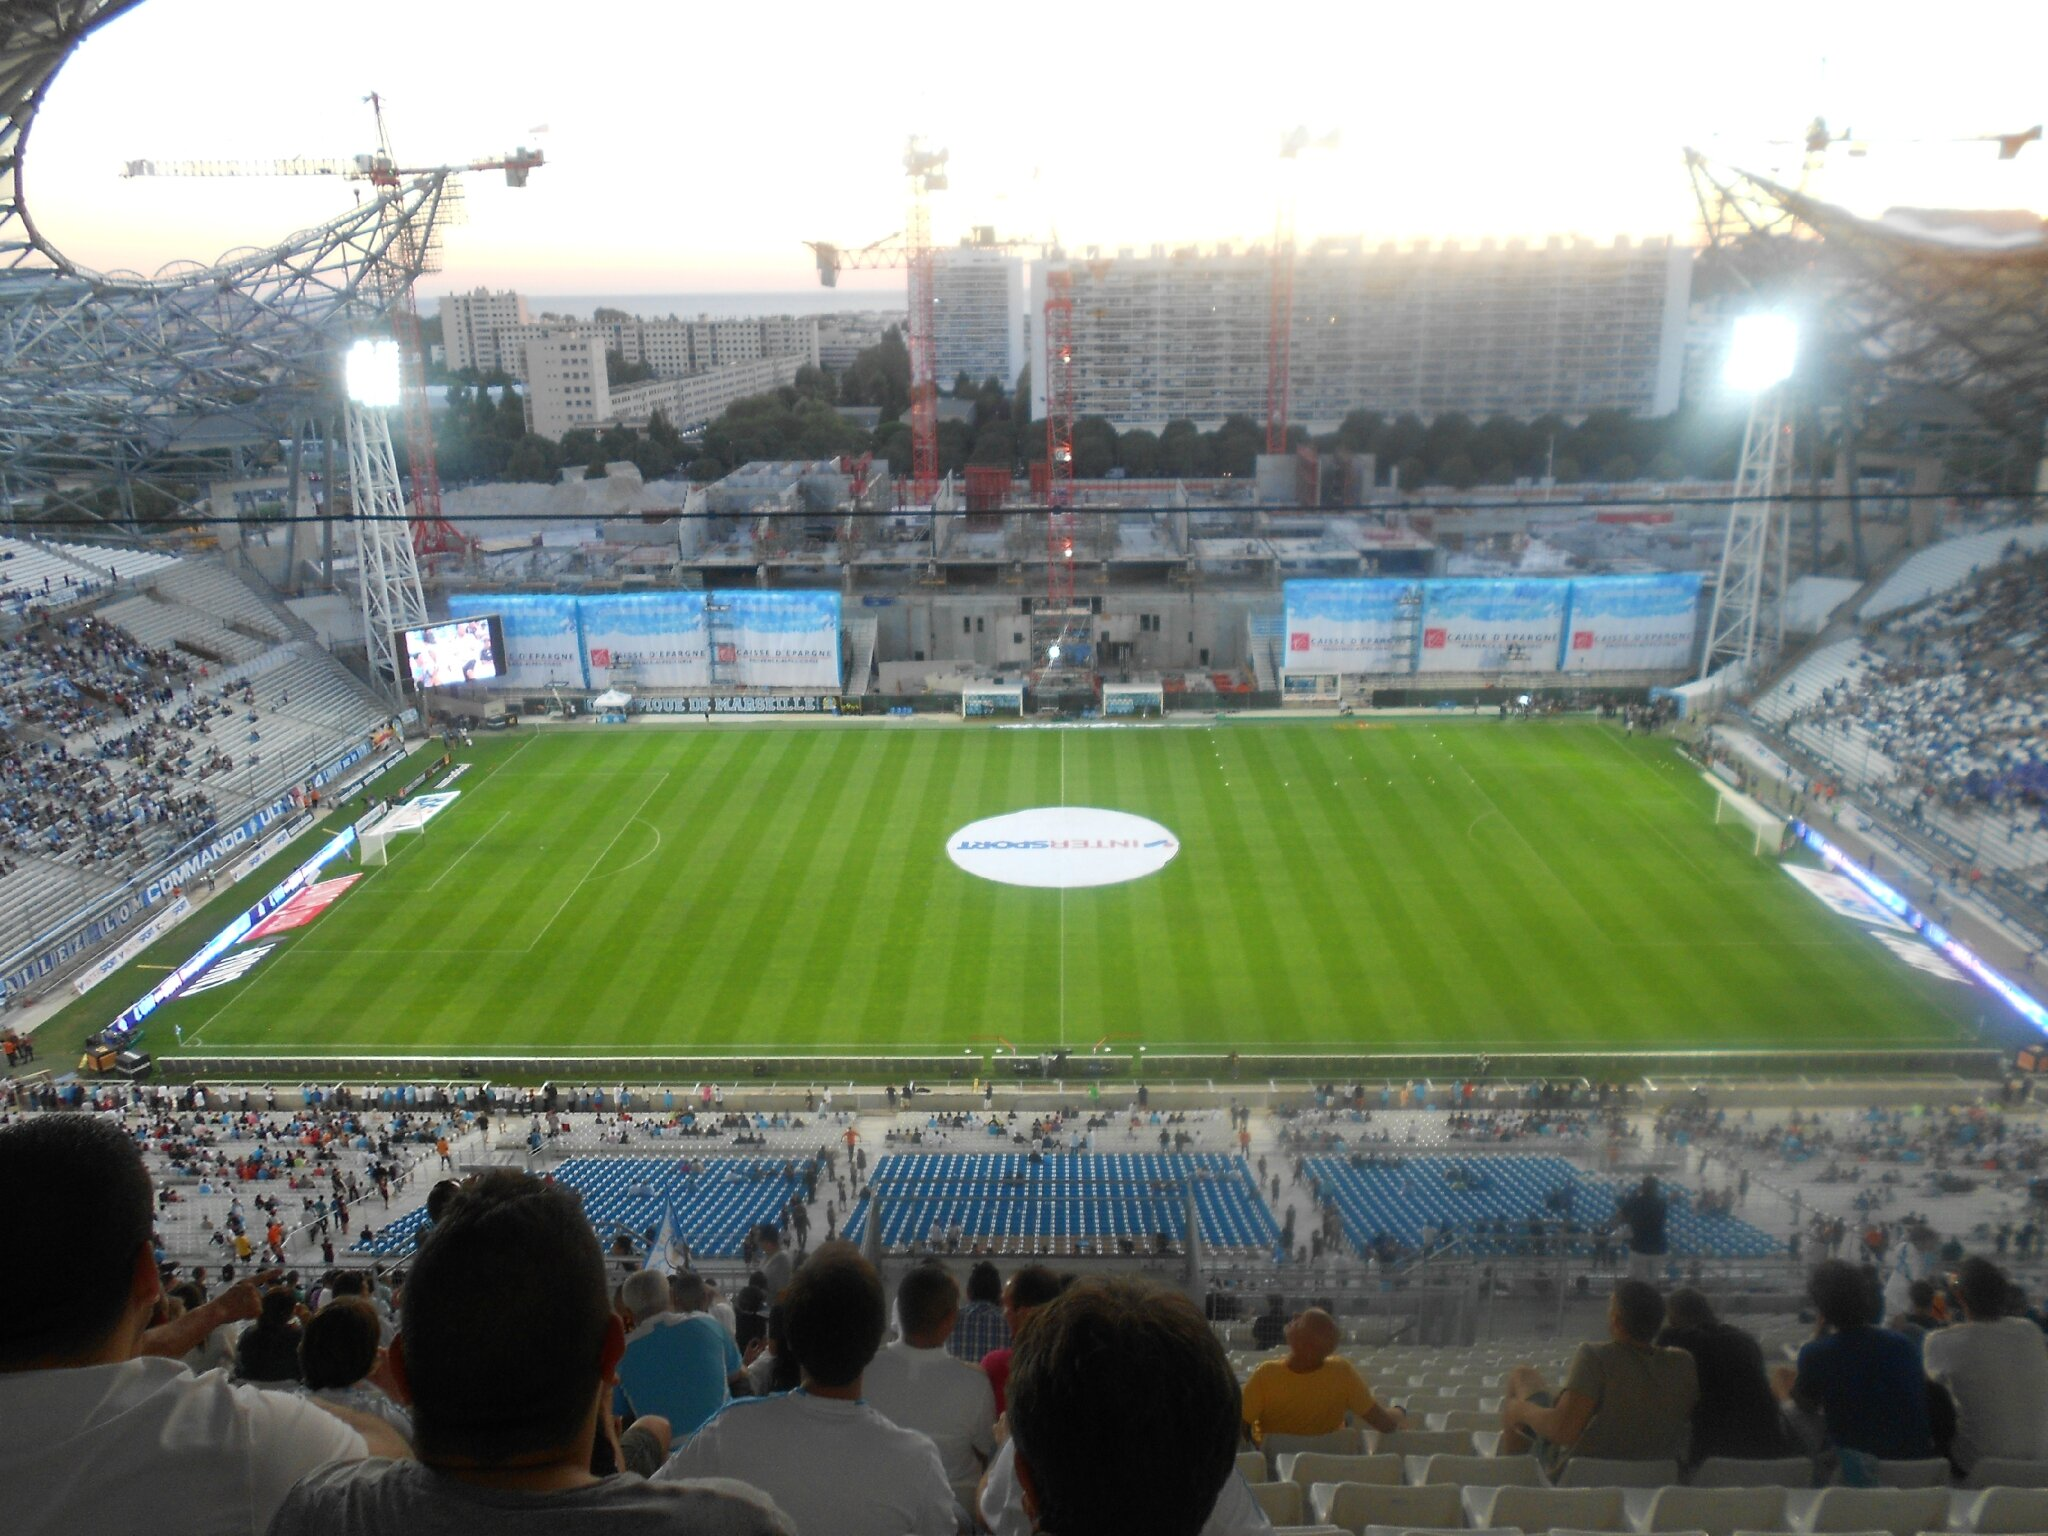 On y tait marseille monaco 01 09 13 eleven for Porte 7 stade velodrome